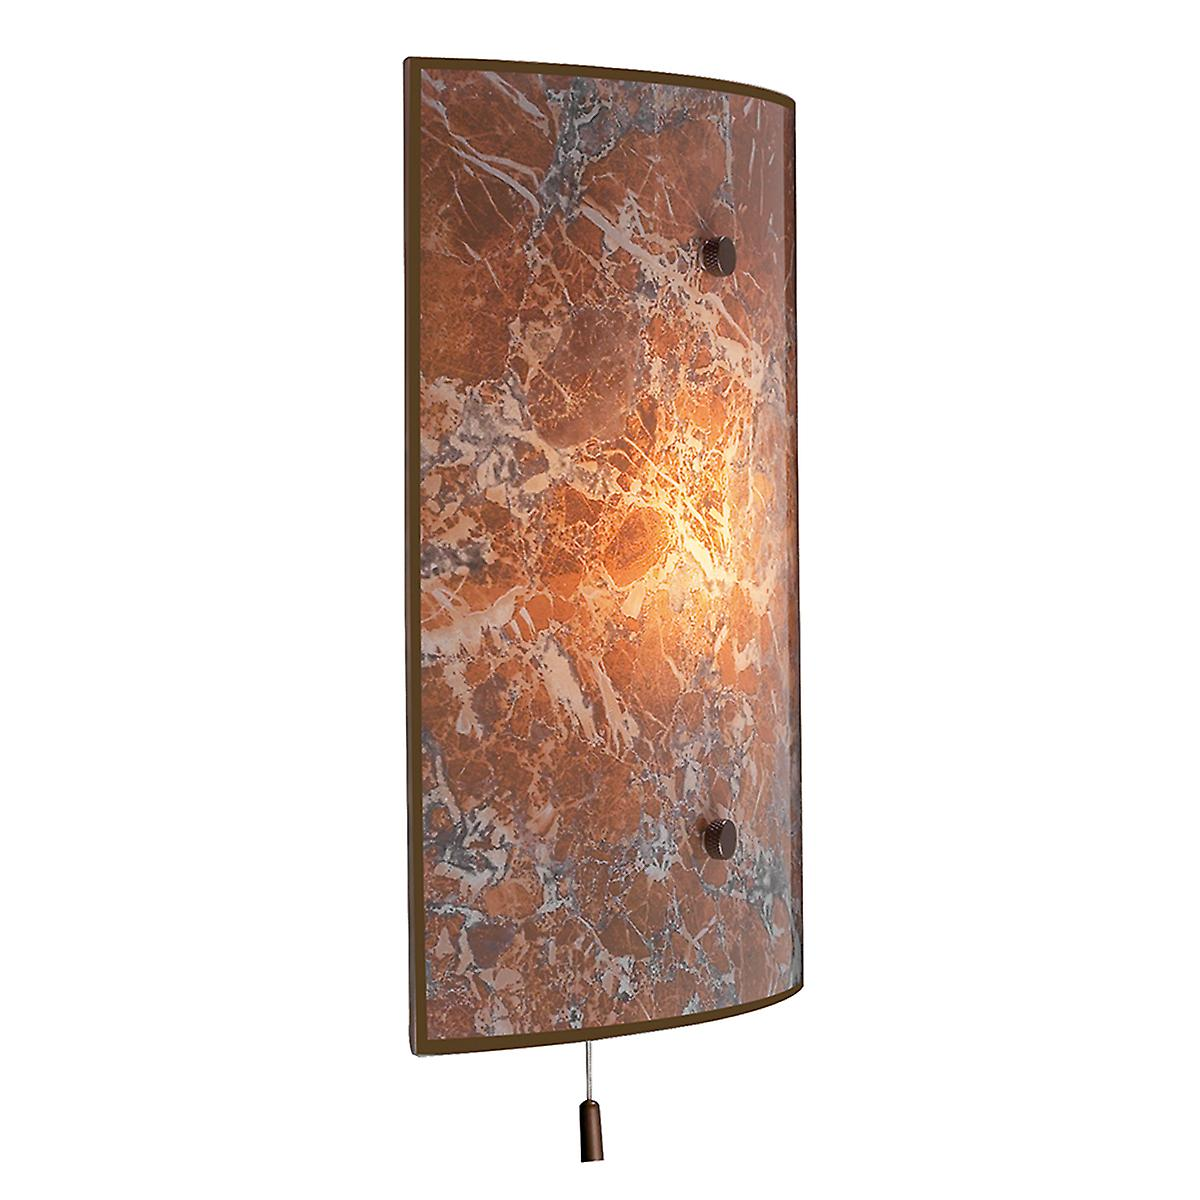 David Hunt MGW4 Savoy Traditional Wall Light With Light Marble Glass